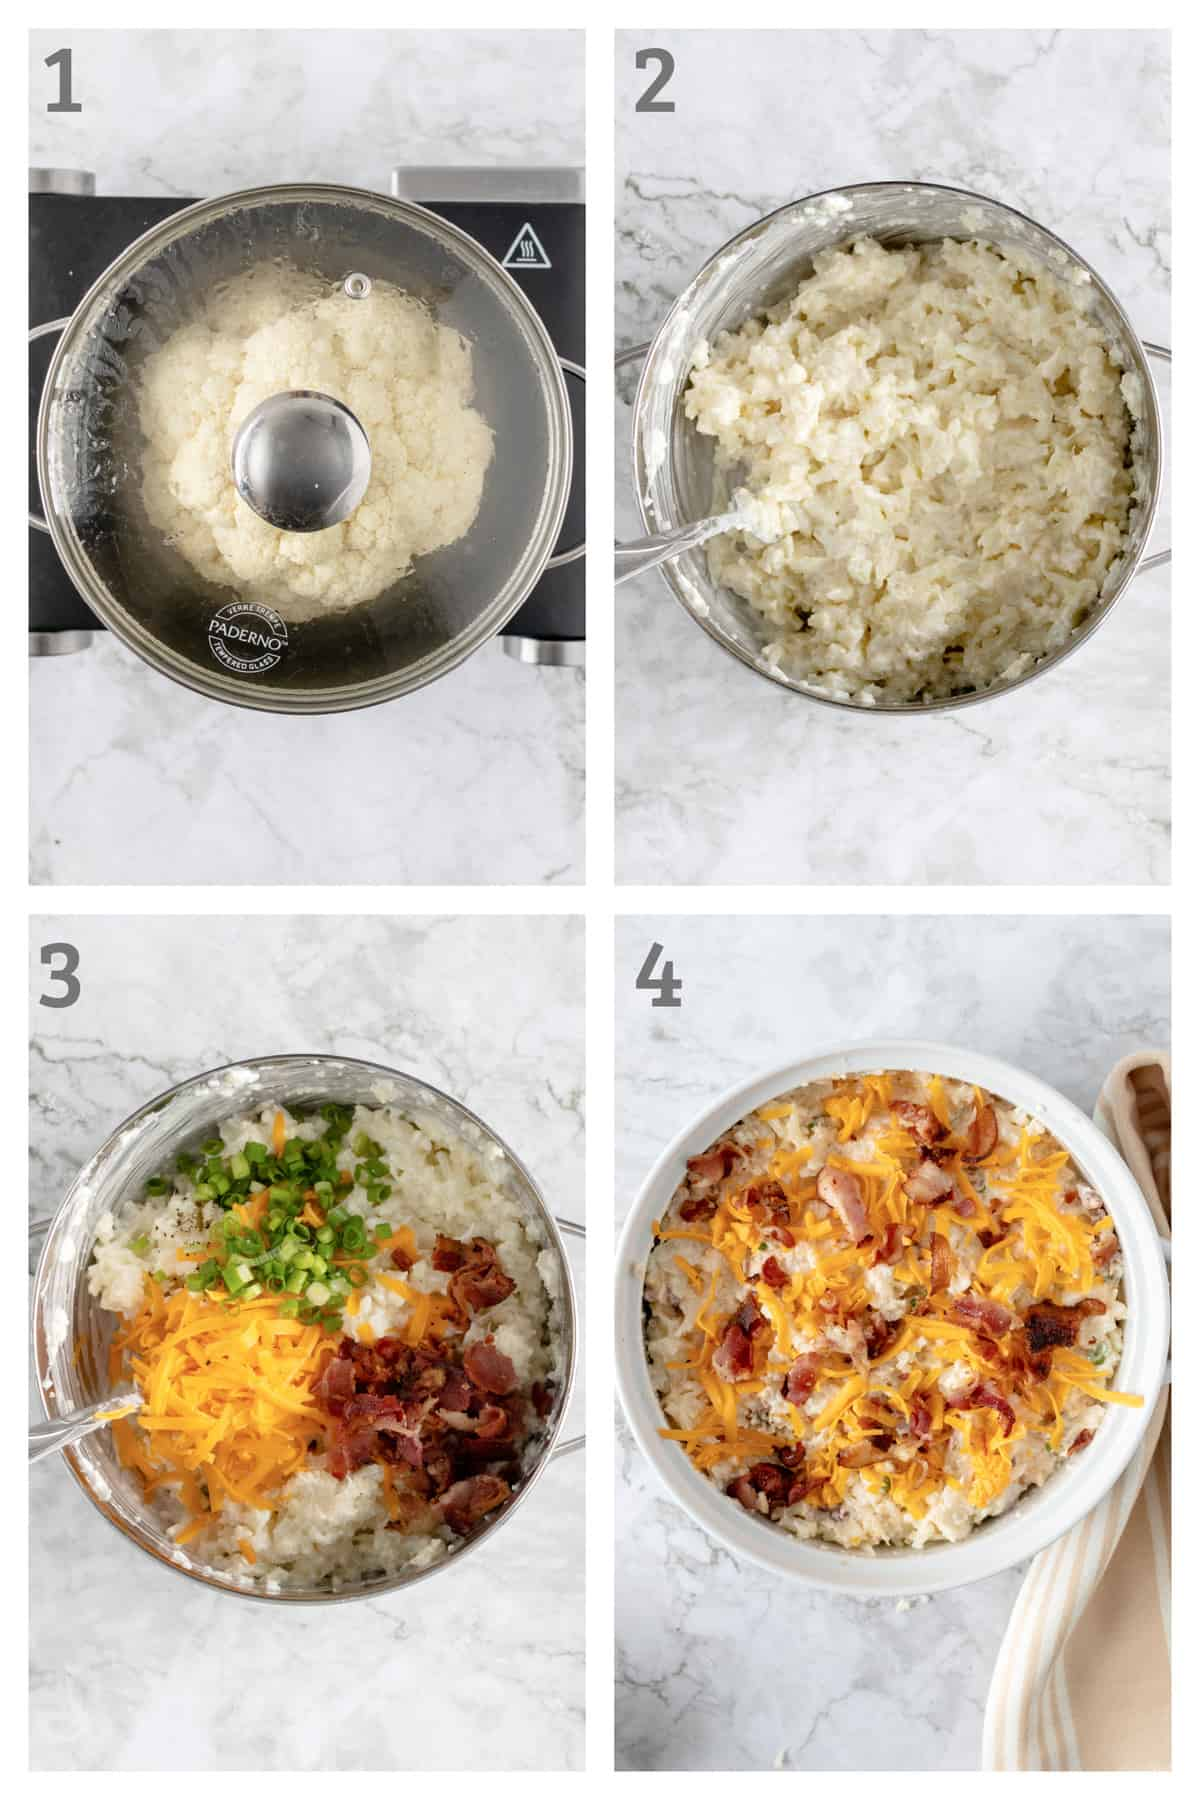 Step by Step instructions for making loaded cauliflower casserole